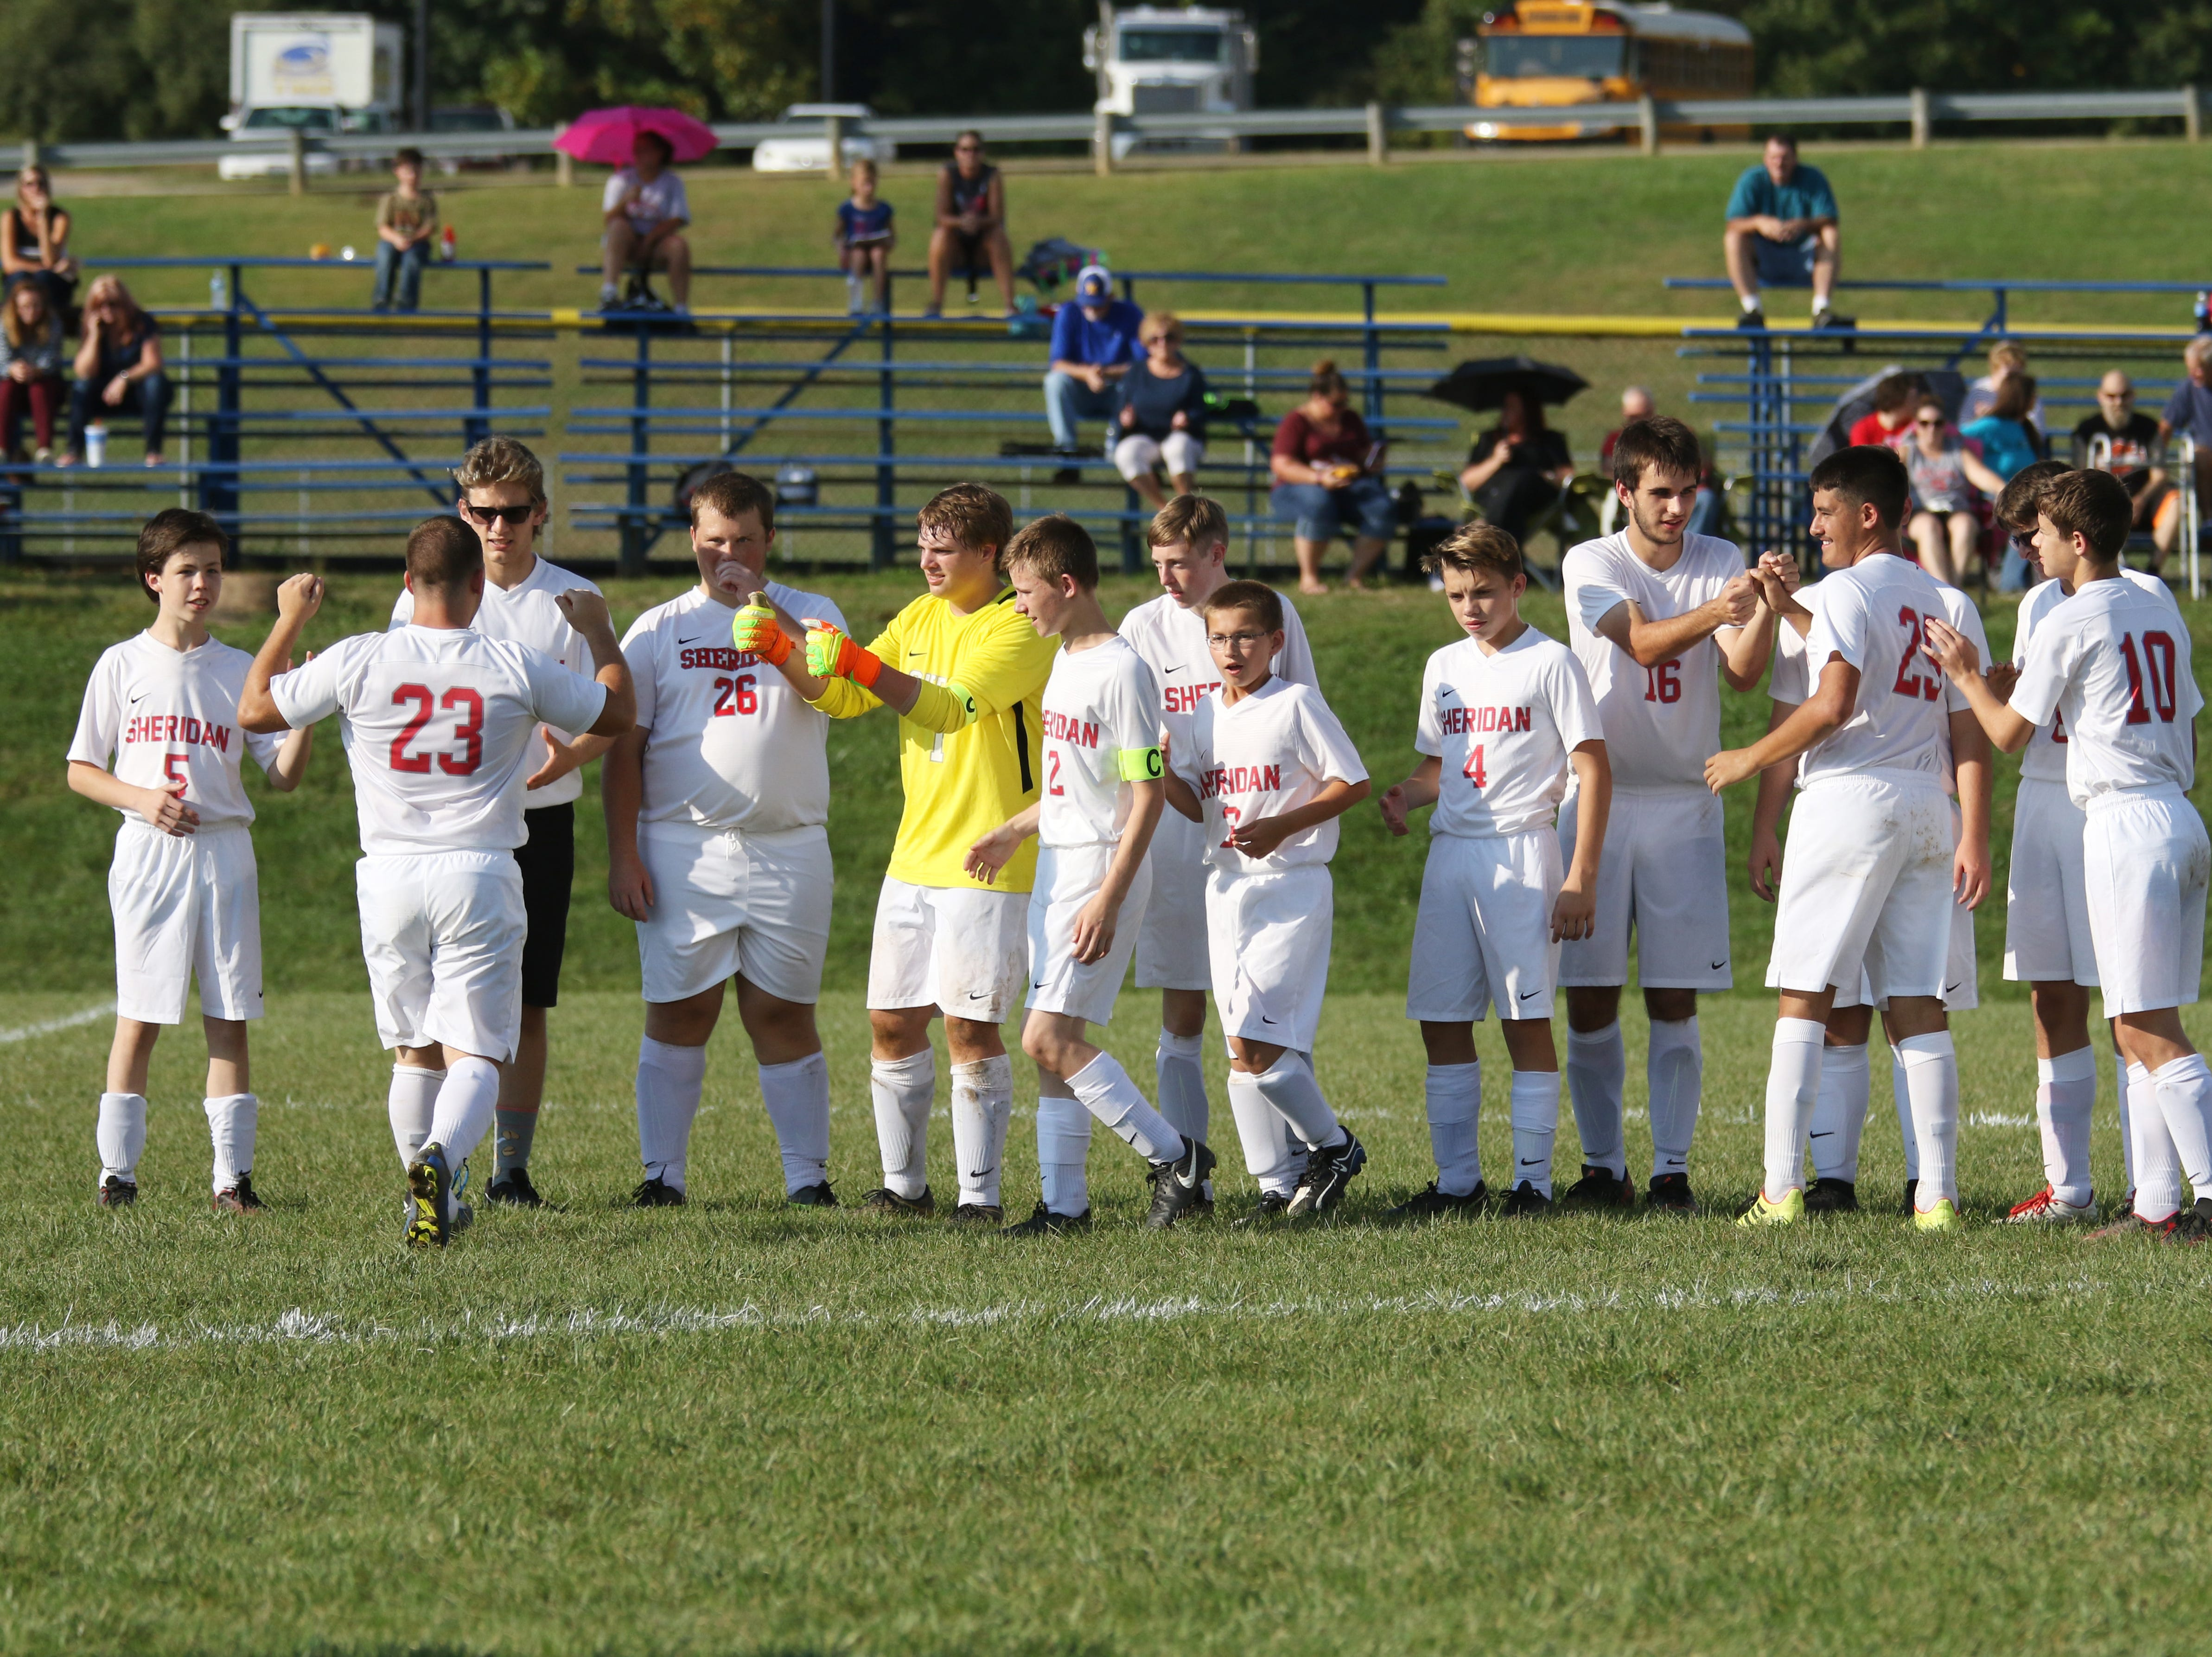 Sheridan meets on the field during introducations before taking on West Muskingum.